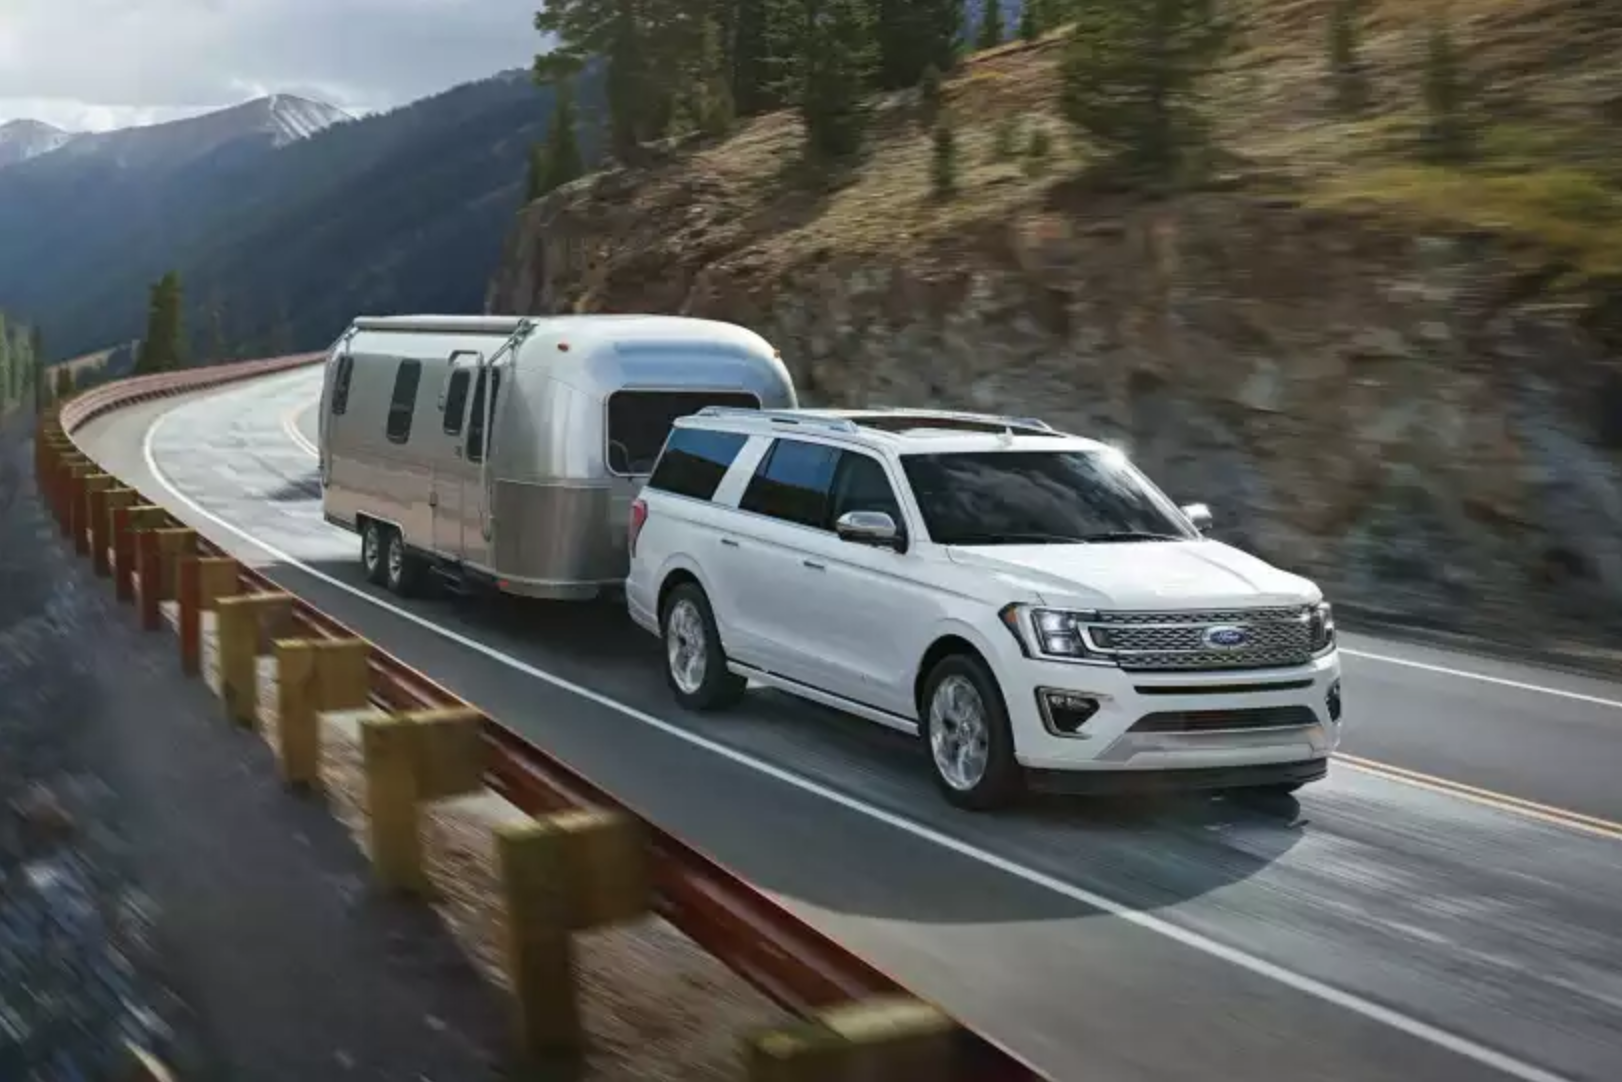 2018 Ford Expedition in North Carolina